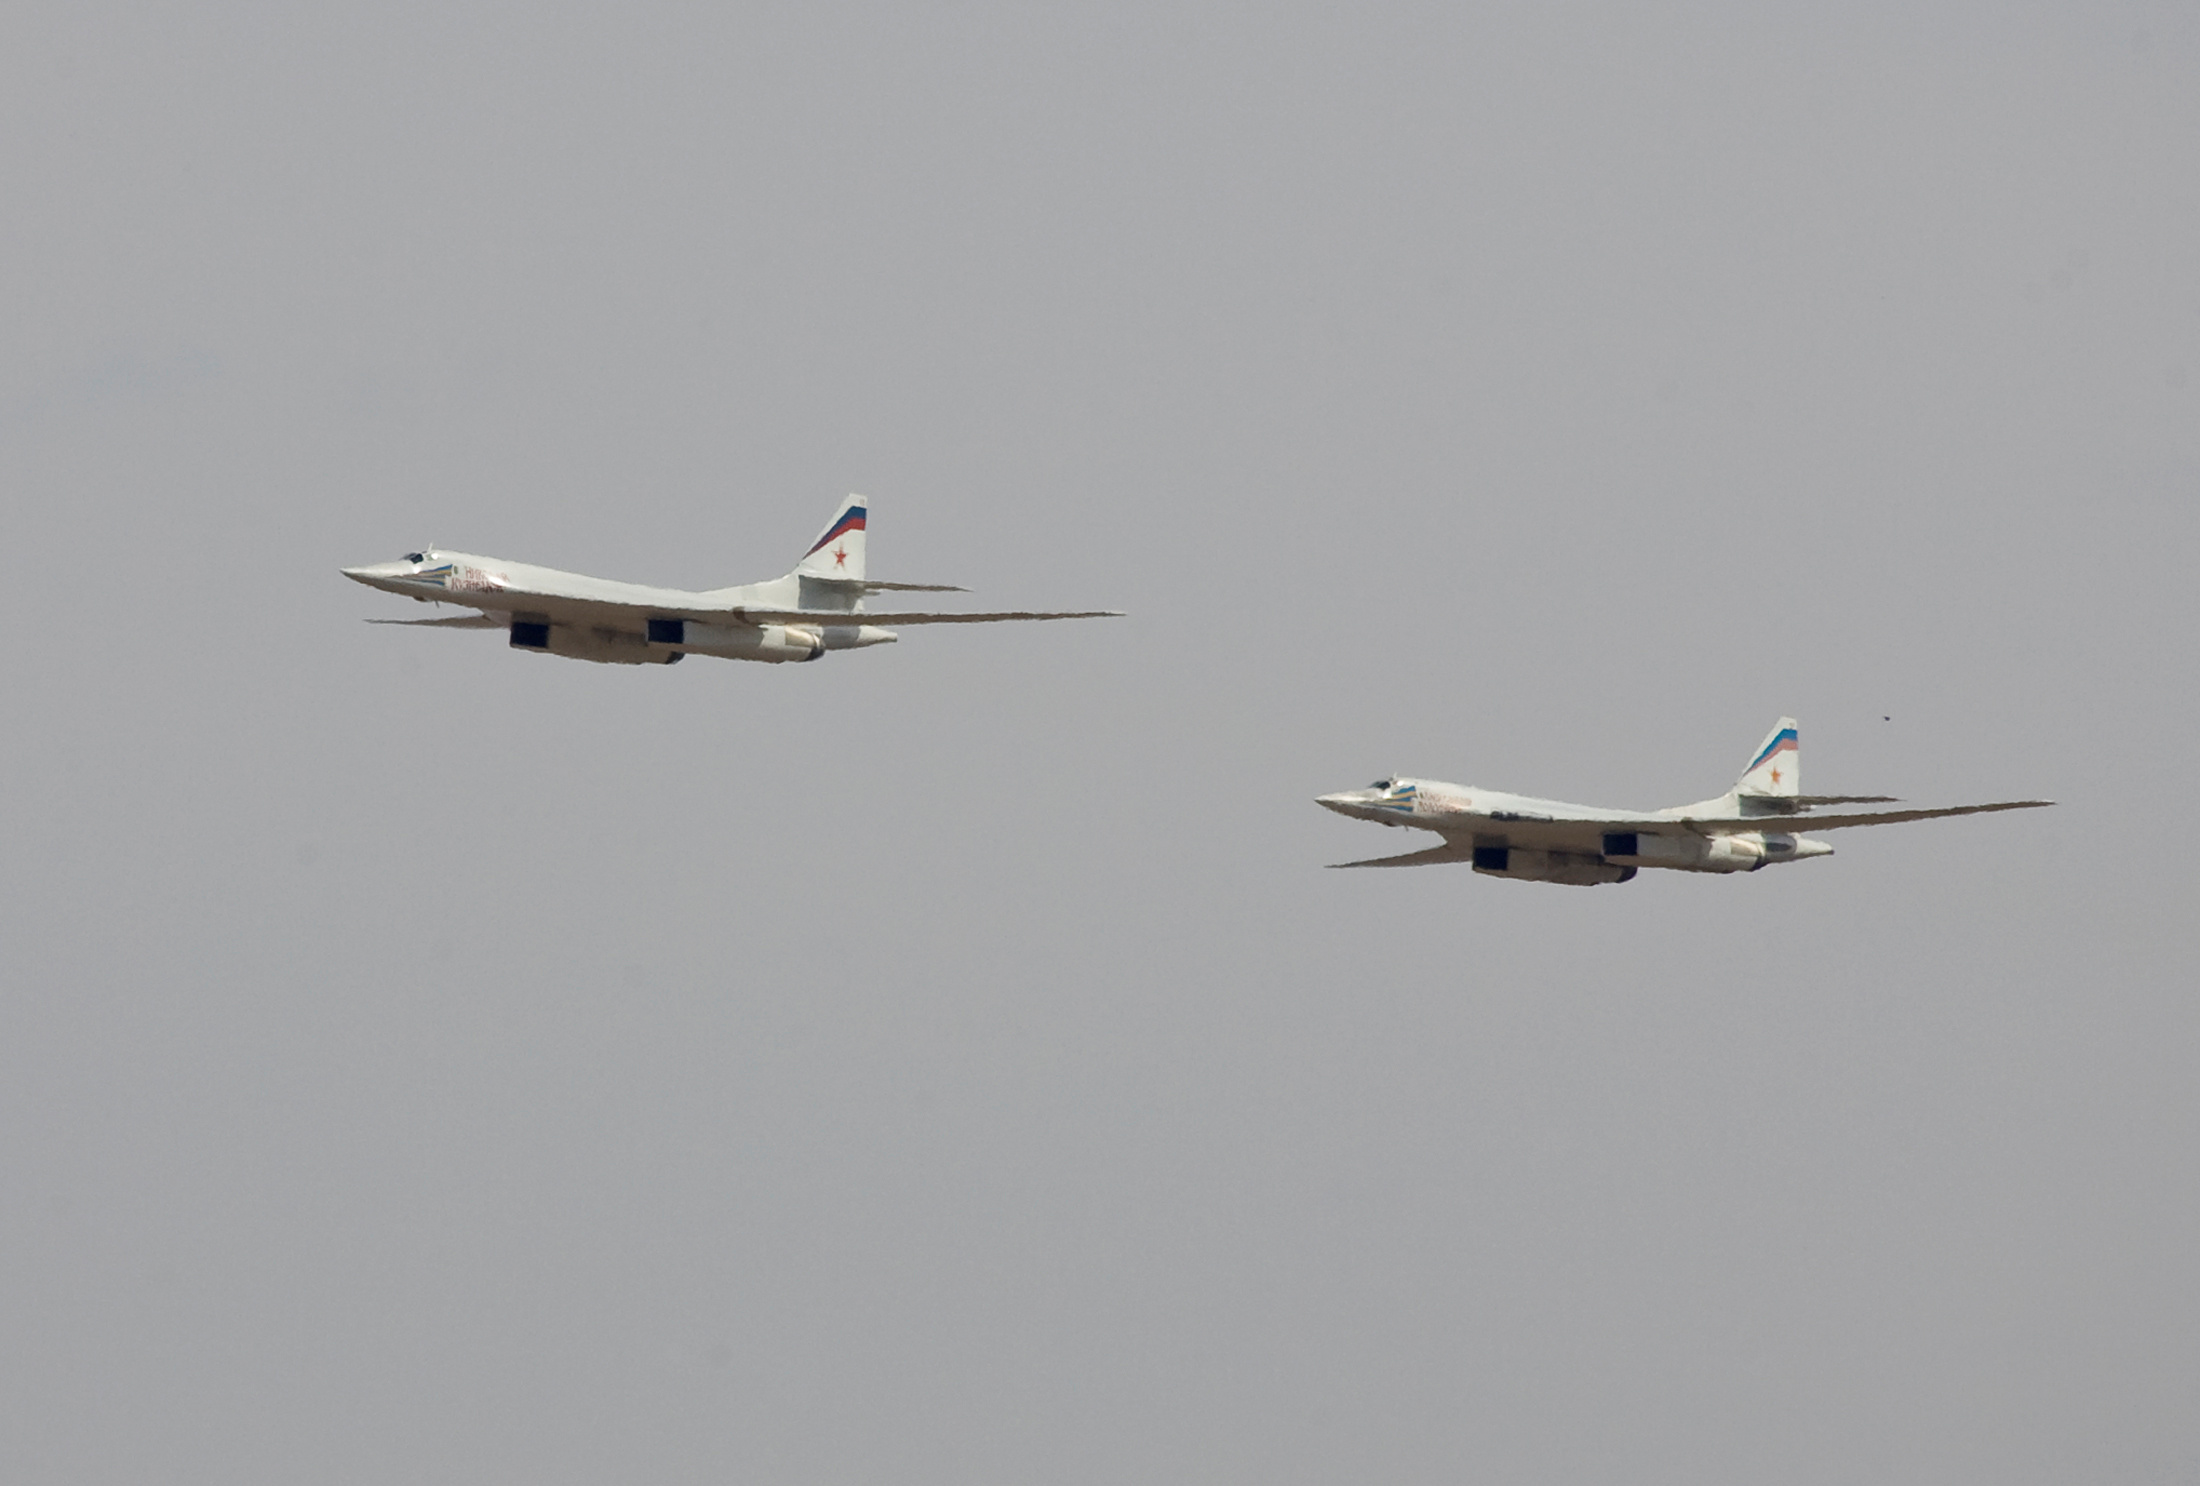 FILE PHOTO: Russian Tu-160 bombers fly during a joint Kazakh-Russian military exercise at Otar military range, some 150km (93 miles) west of Almaty, Kazakhstan, October 3, 2008. REUTERS/Shamil Zhumatov/File Photo